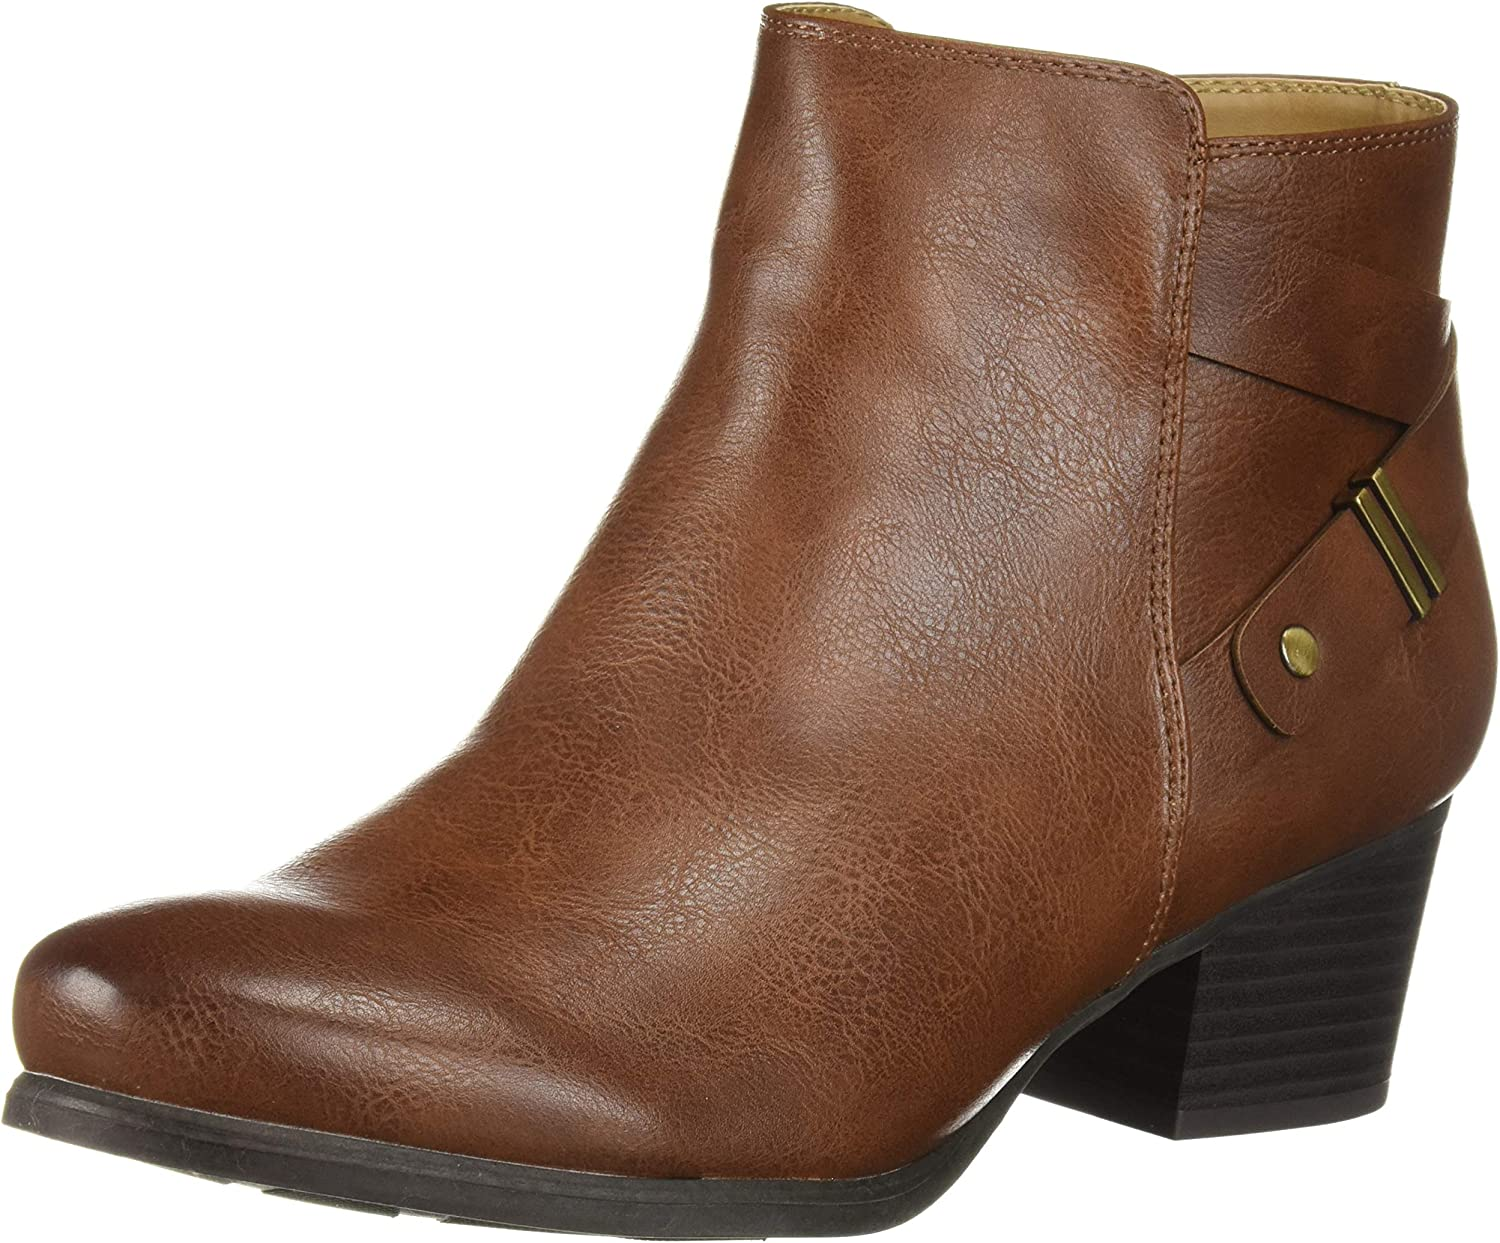 SOUL Naturalizer Women's Calm Ankle Boot Whiskey 10 M US